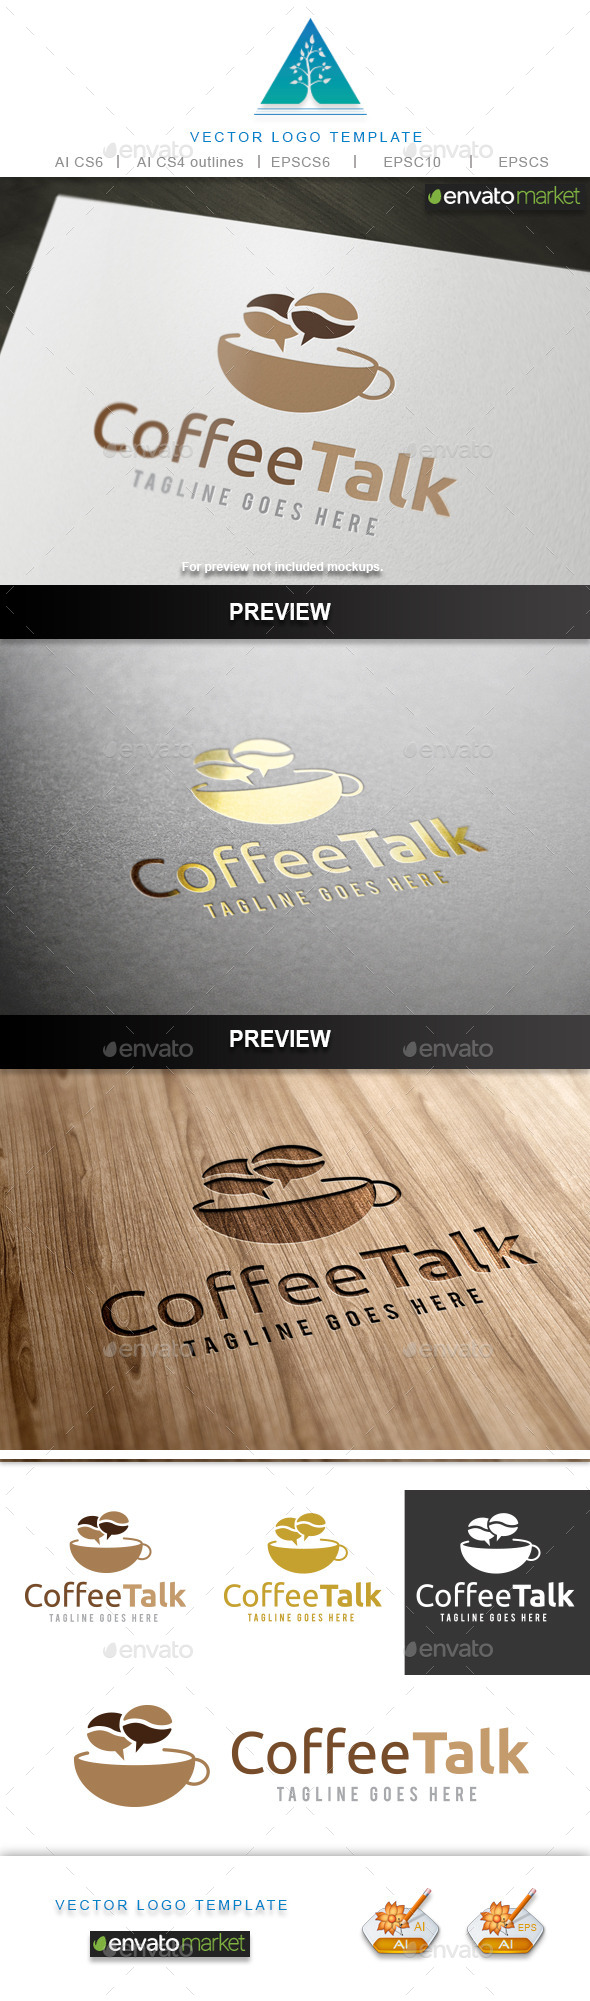 GraphicRiver Coffee Talk 2 Logo 10015274